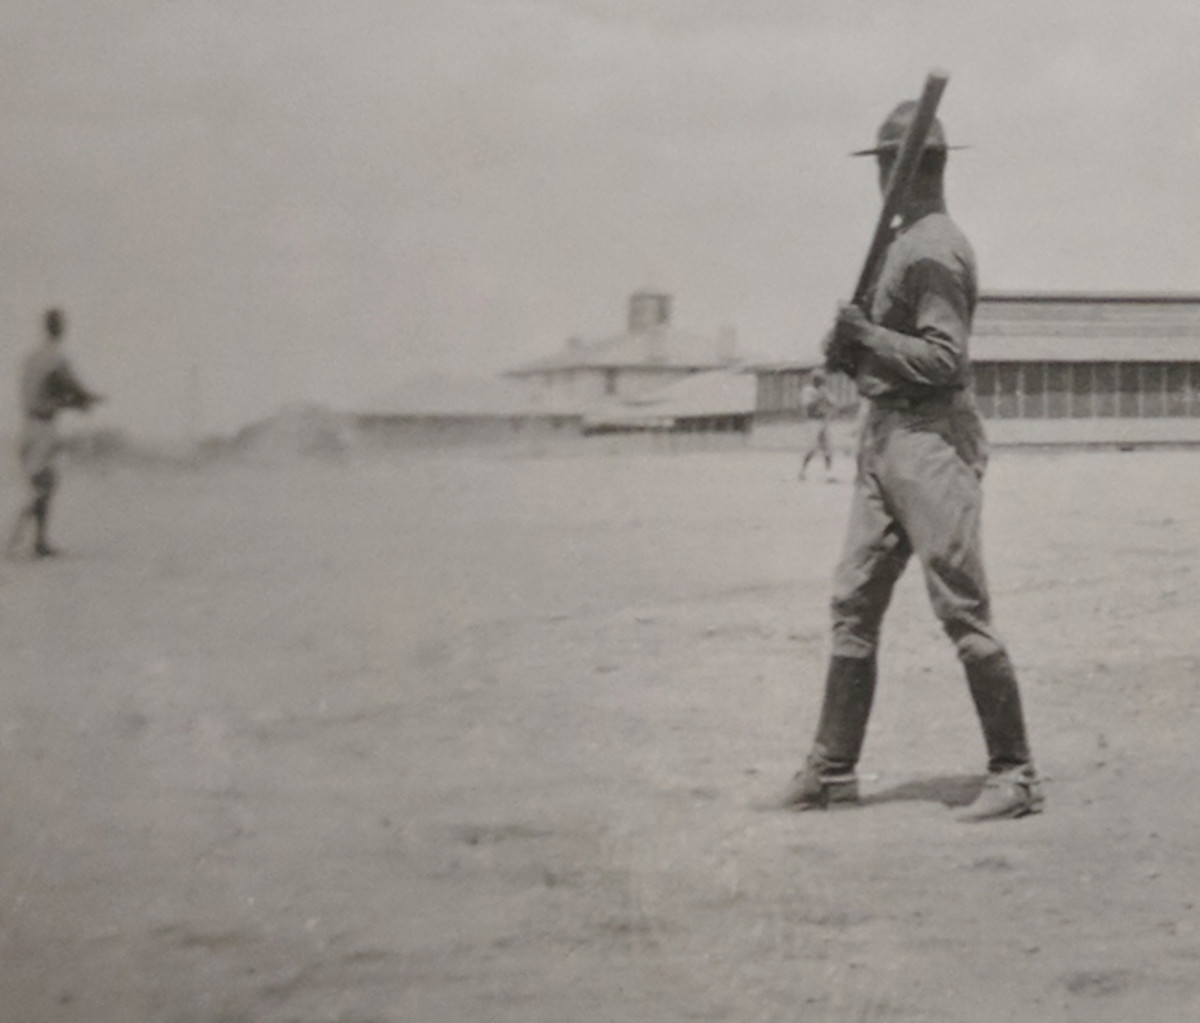 One of the few benefits of serving at posts in Texas and the Southwest was the abundance of open space to play baseball. In this photograph, left-hand hitting Lieutenant Houghten of the 13th Cavalry Regiment takes his turn at bat. It is interesting to note that the lieutenant is still wearing his spurs as he waits for the pitch. Courtesy the Robert Goodwin Collection